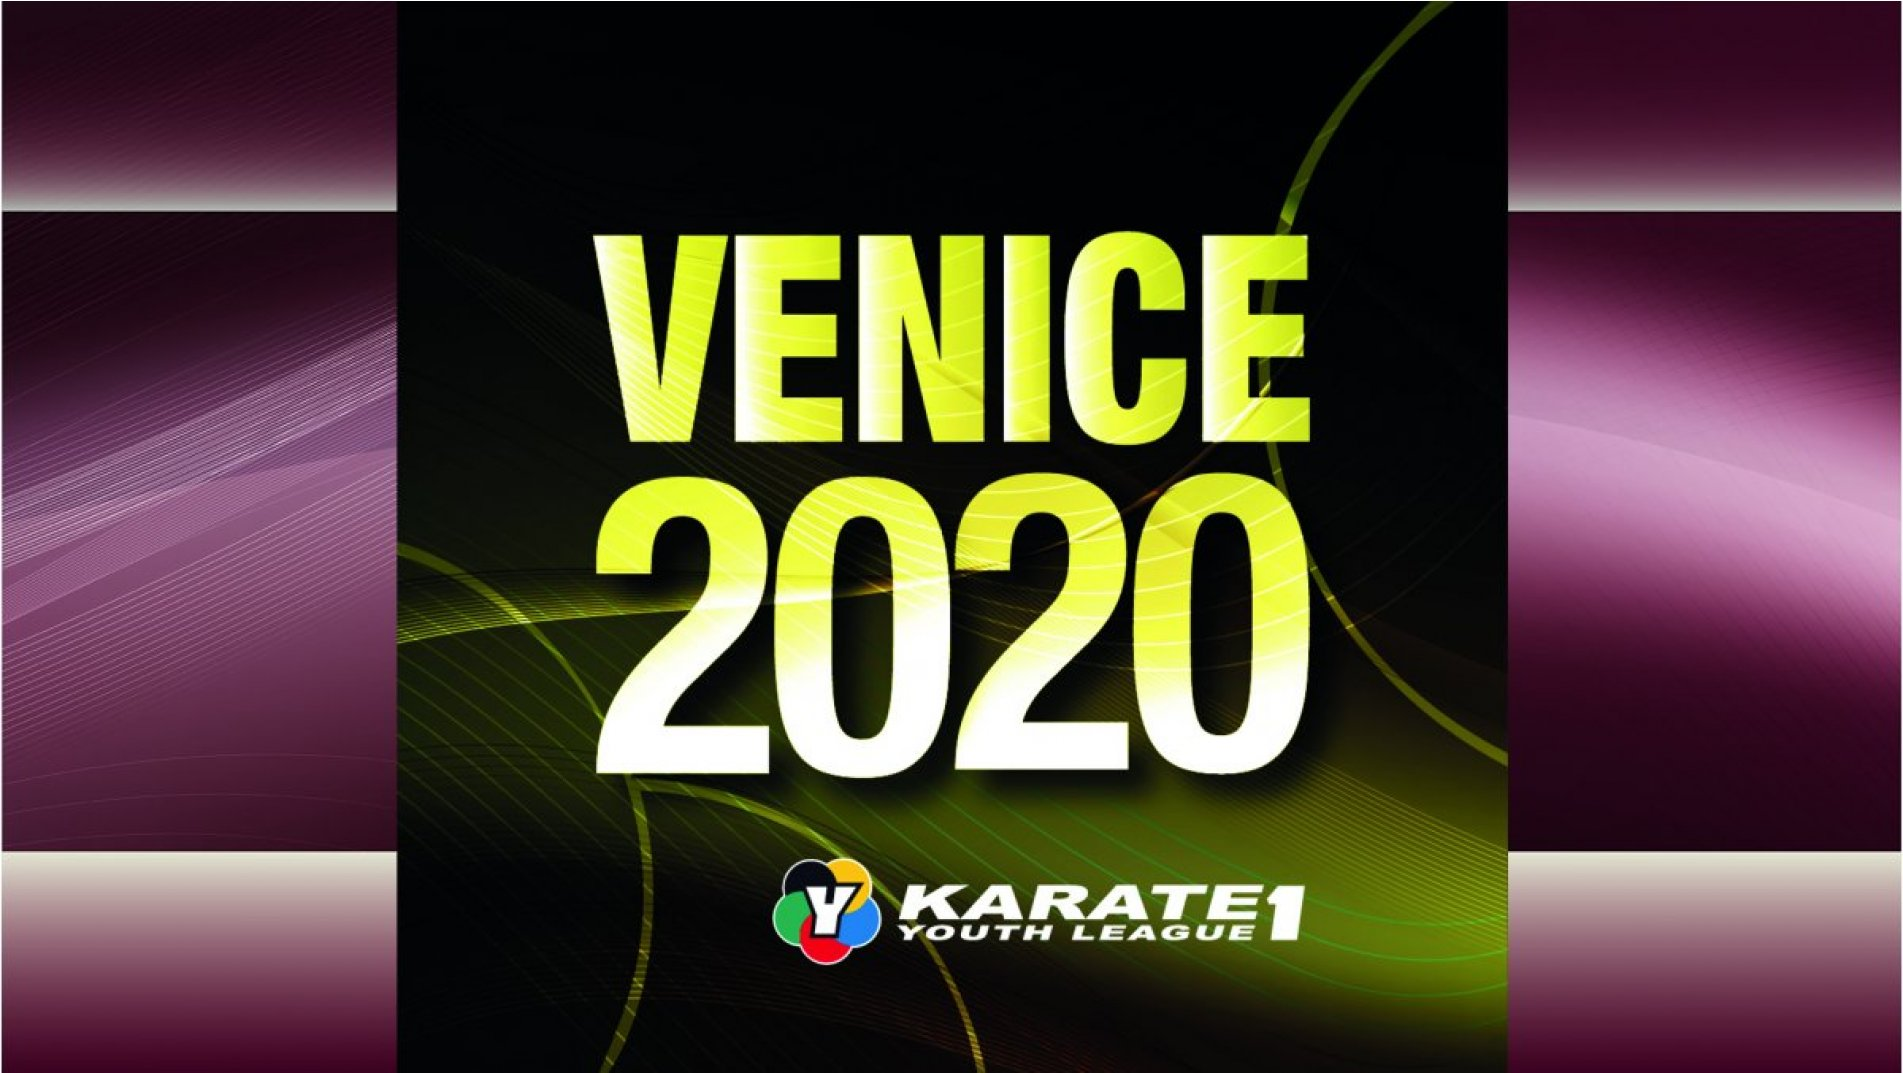 Official bulletin of Karate 1-Youth League Venice launched